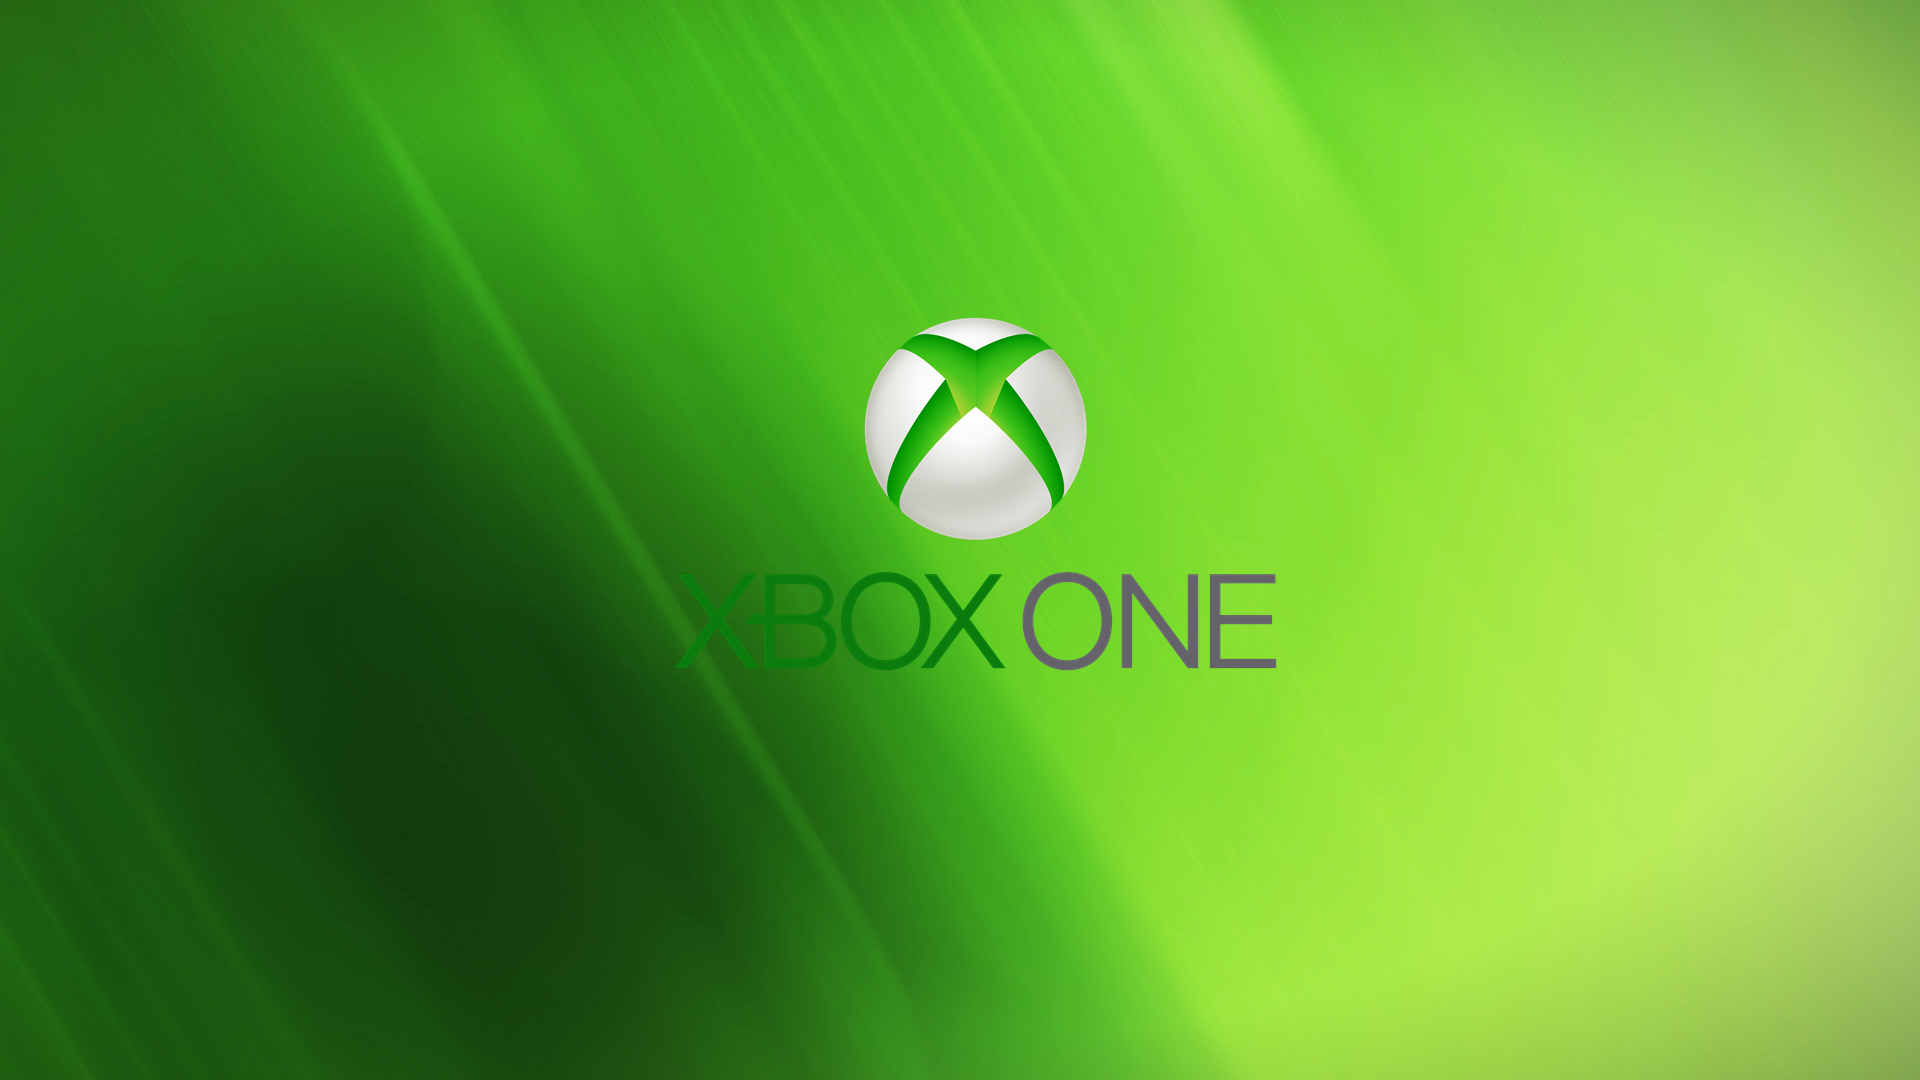 Xbox Iphone Wallpaper Xbox one wallpaper by